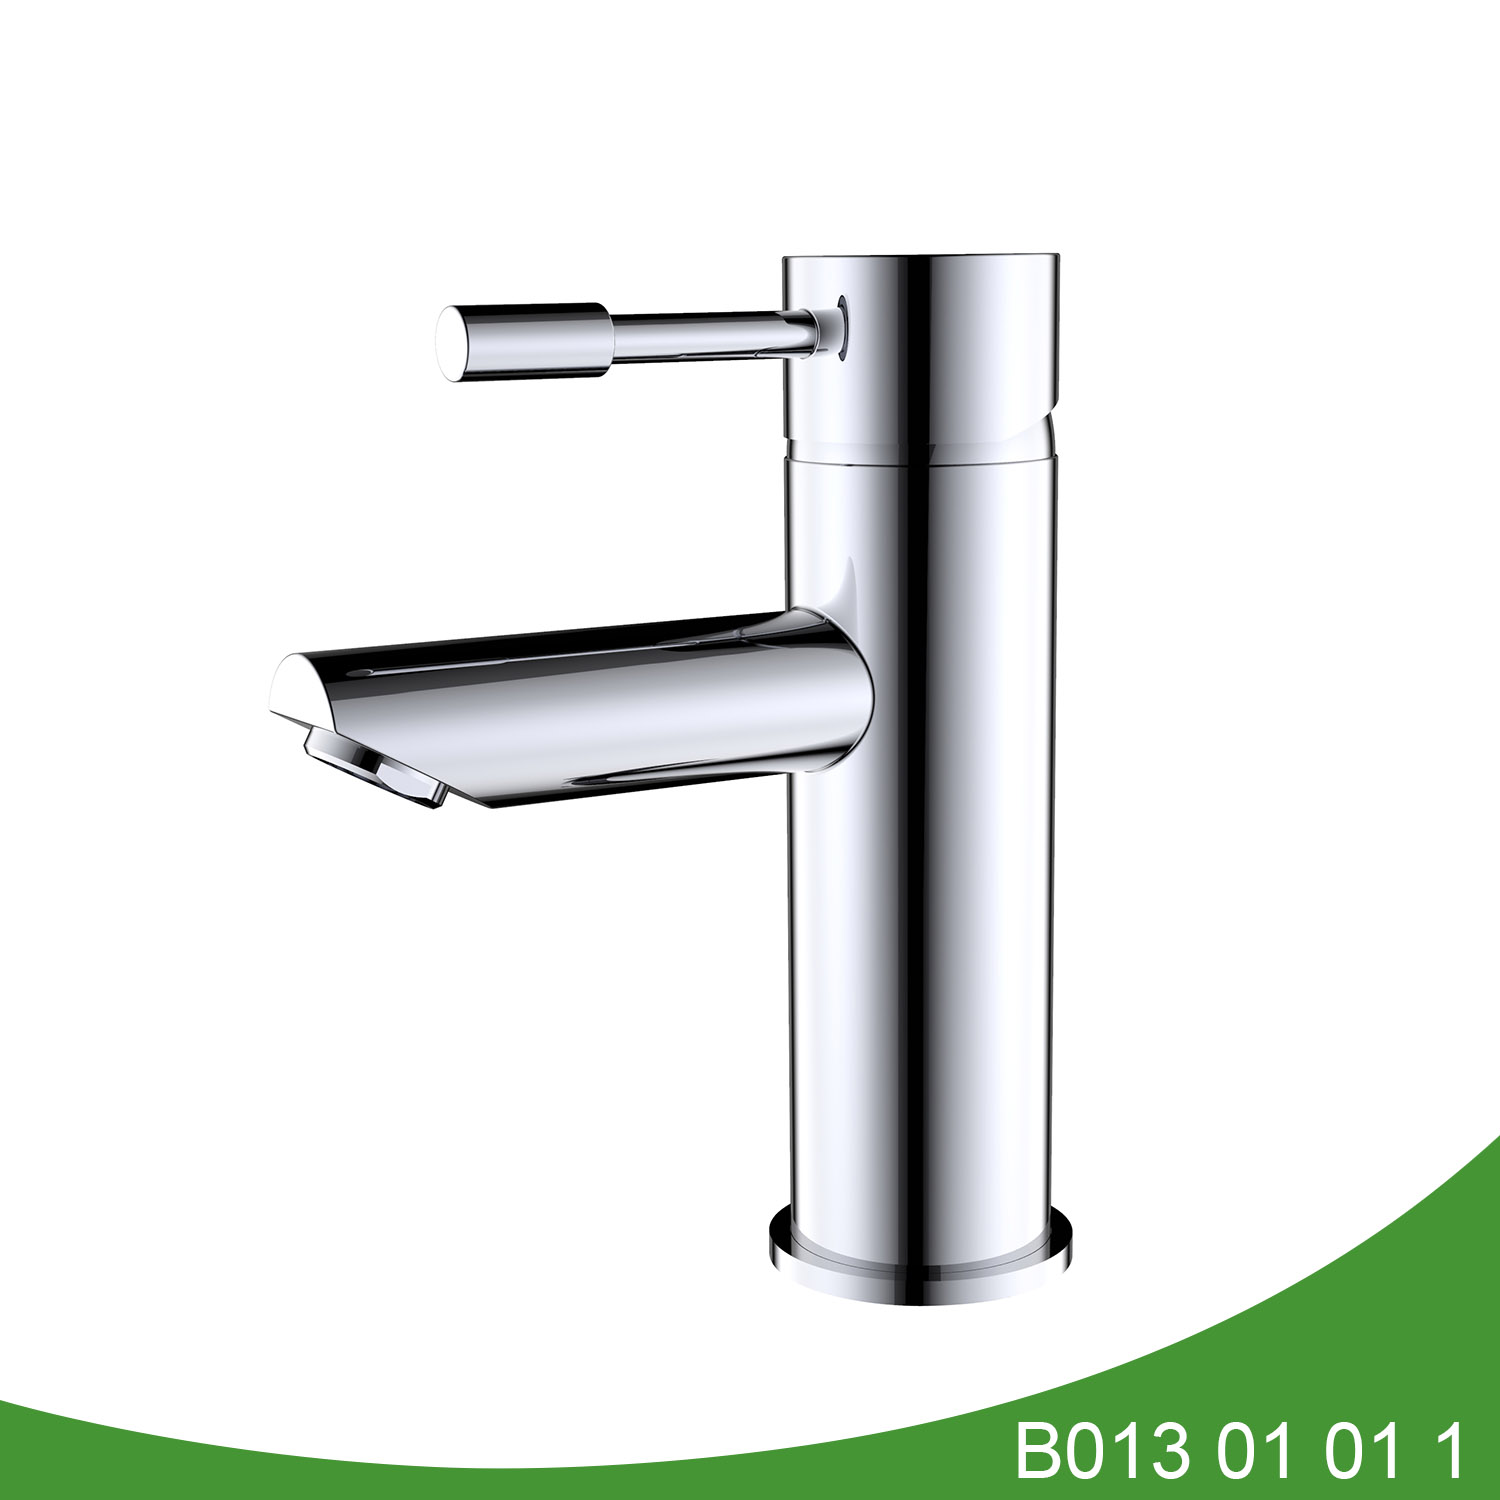 Single handle chrome basin faucet B013 01 01 1